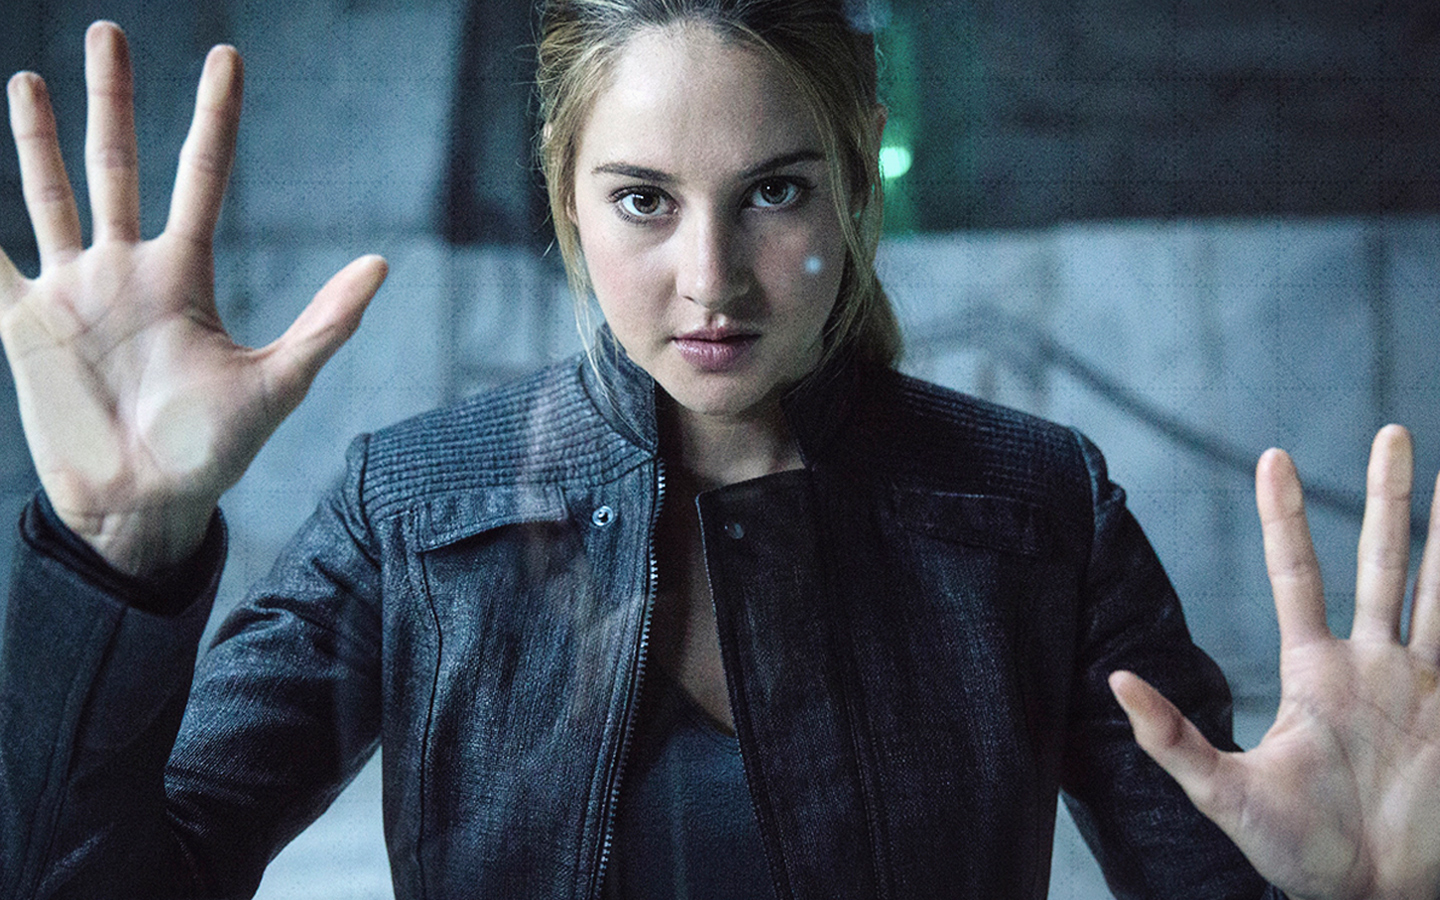 Shailene Woodley as Tris Prior in Divergent (2014)